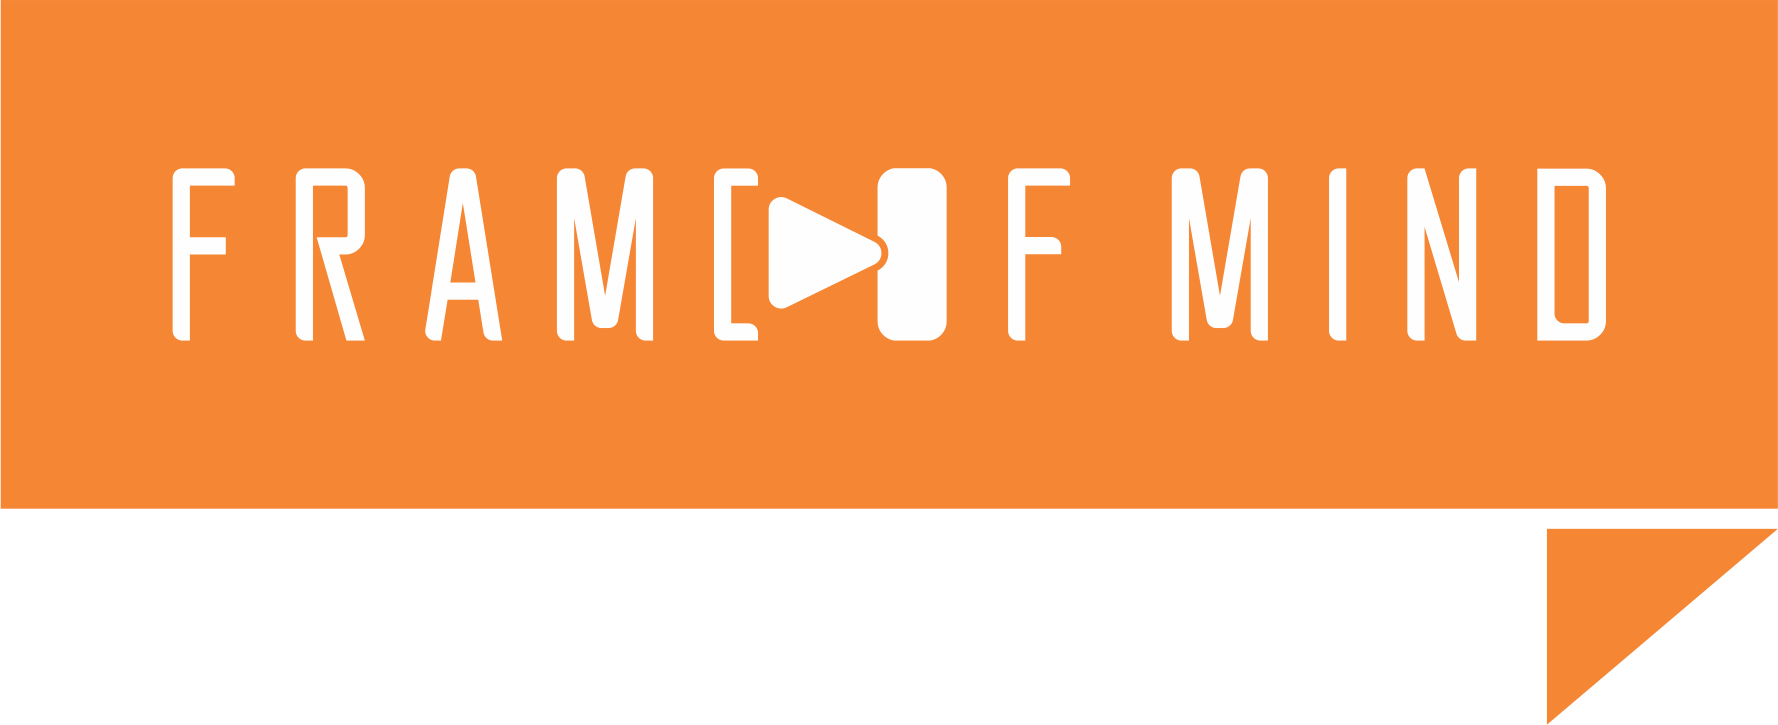 Fom logo orange